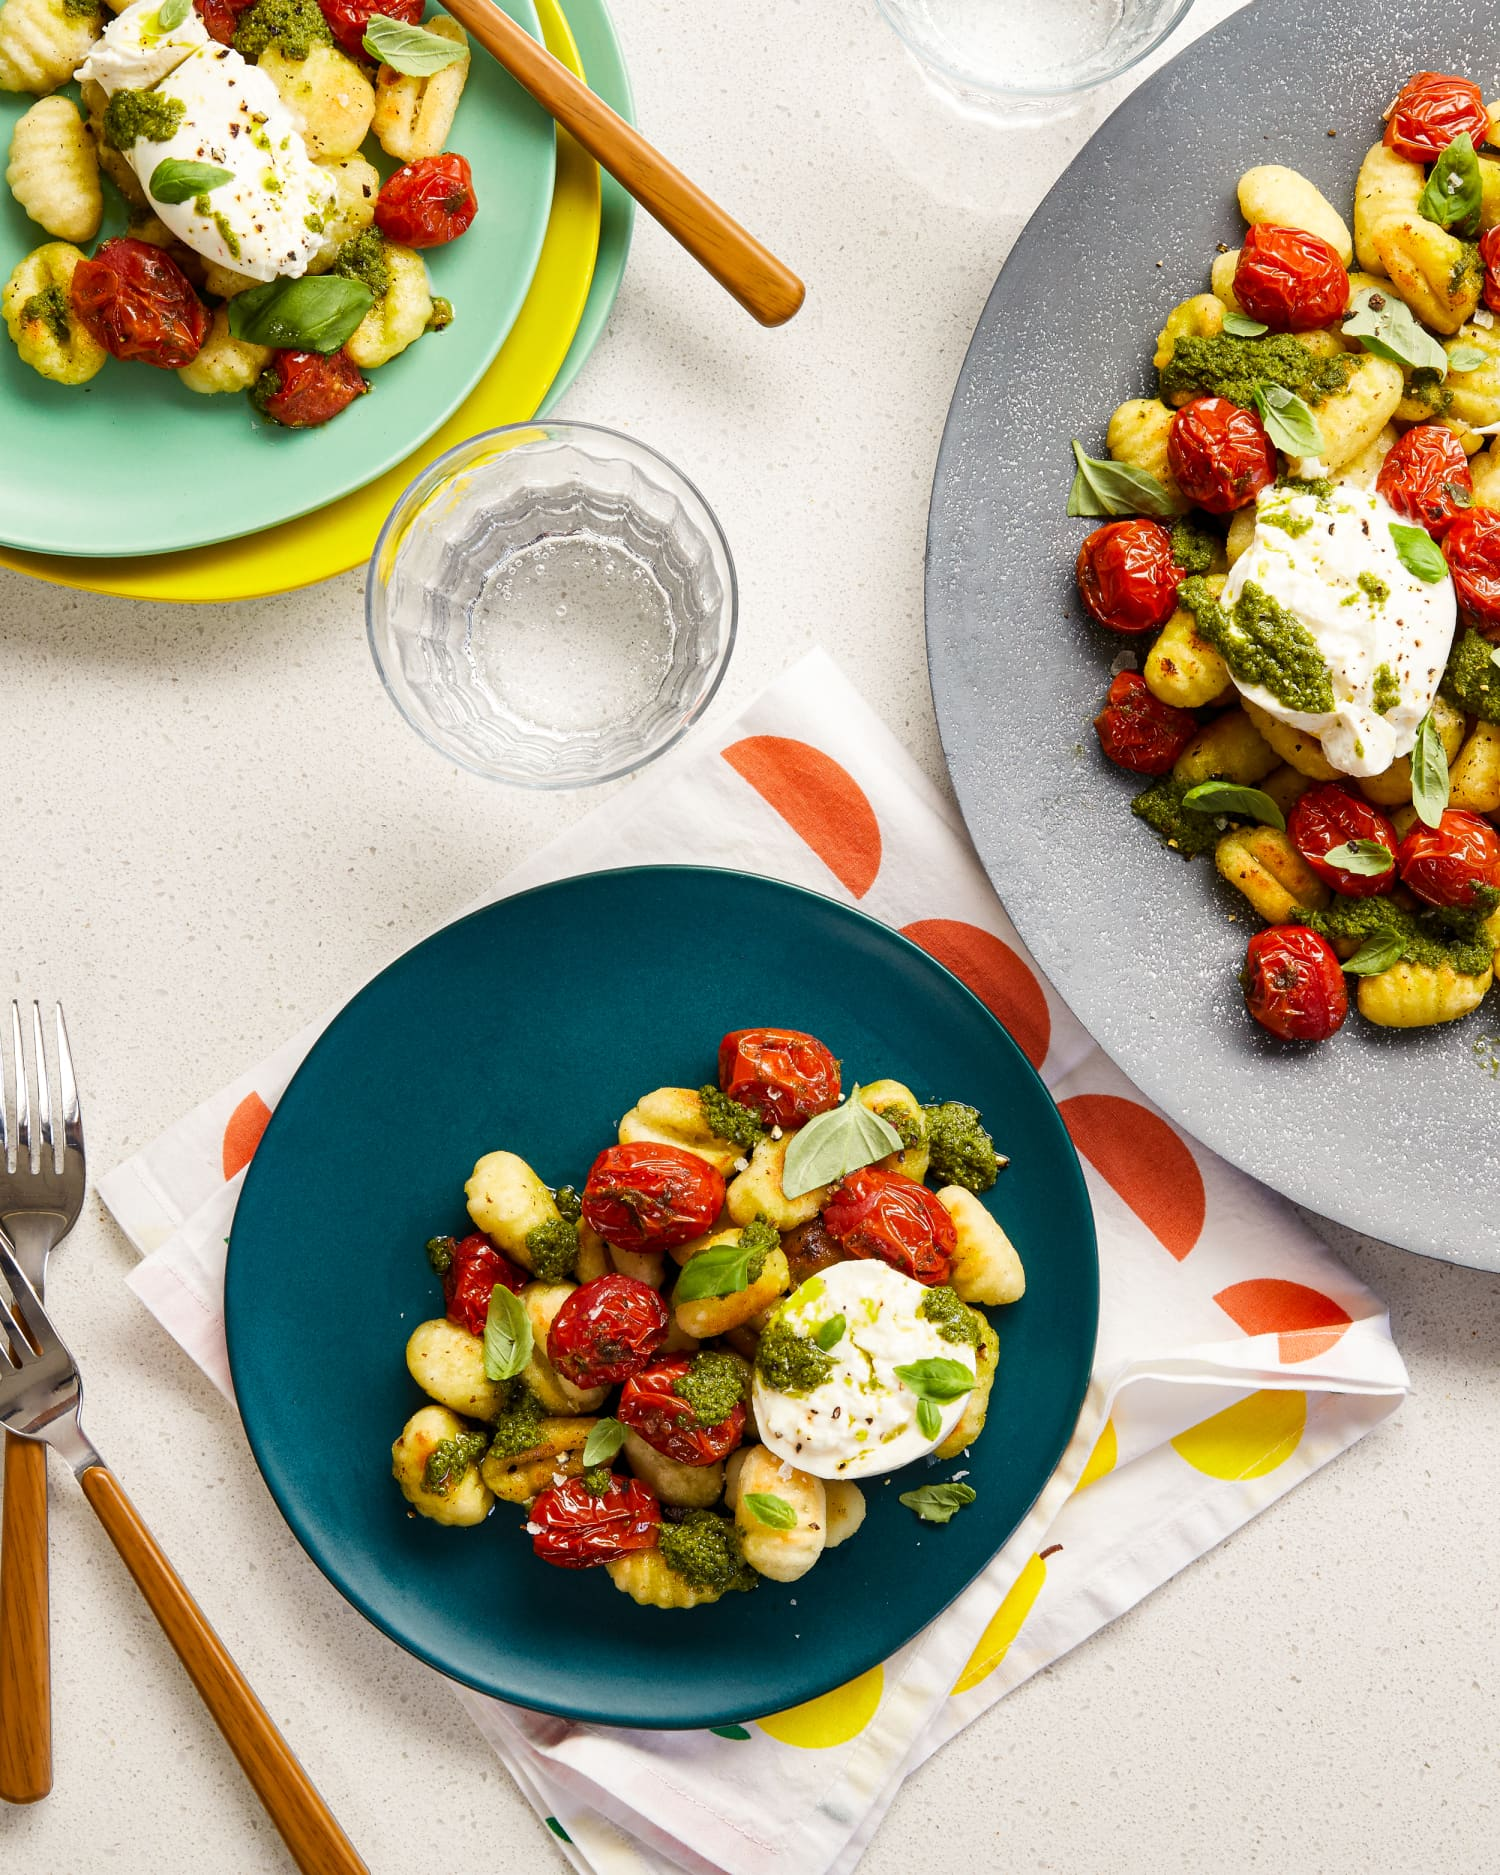 Recipe: Grilled Cherry Tomatoes with Gnocchi and Burrata